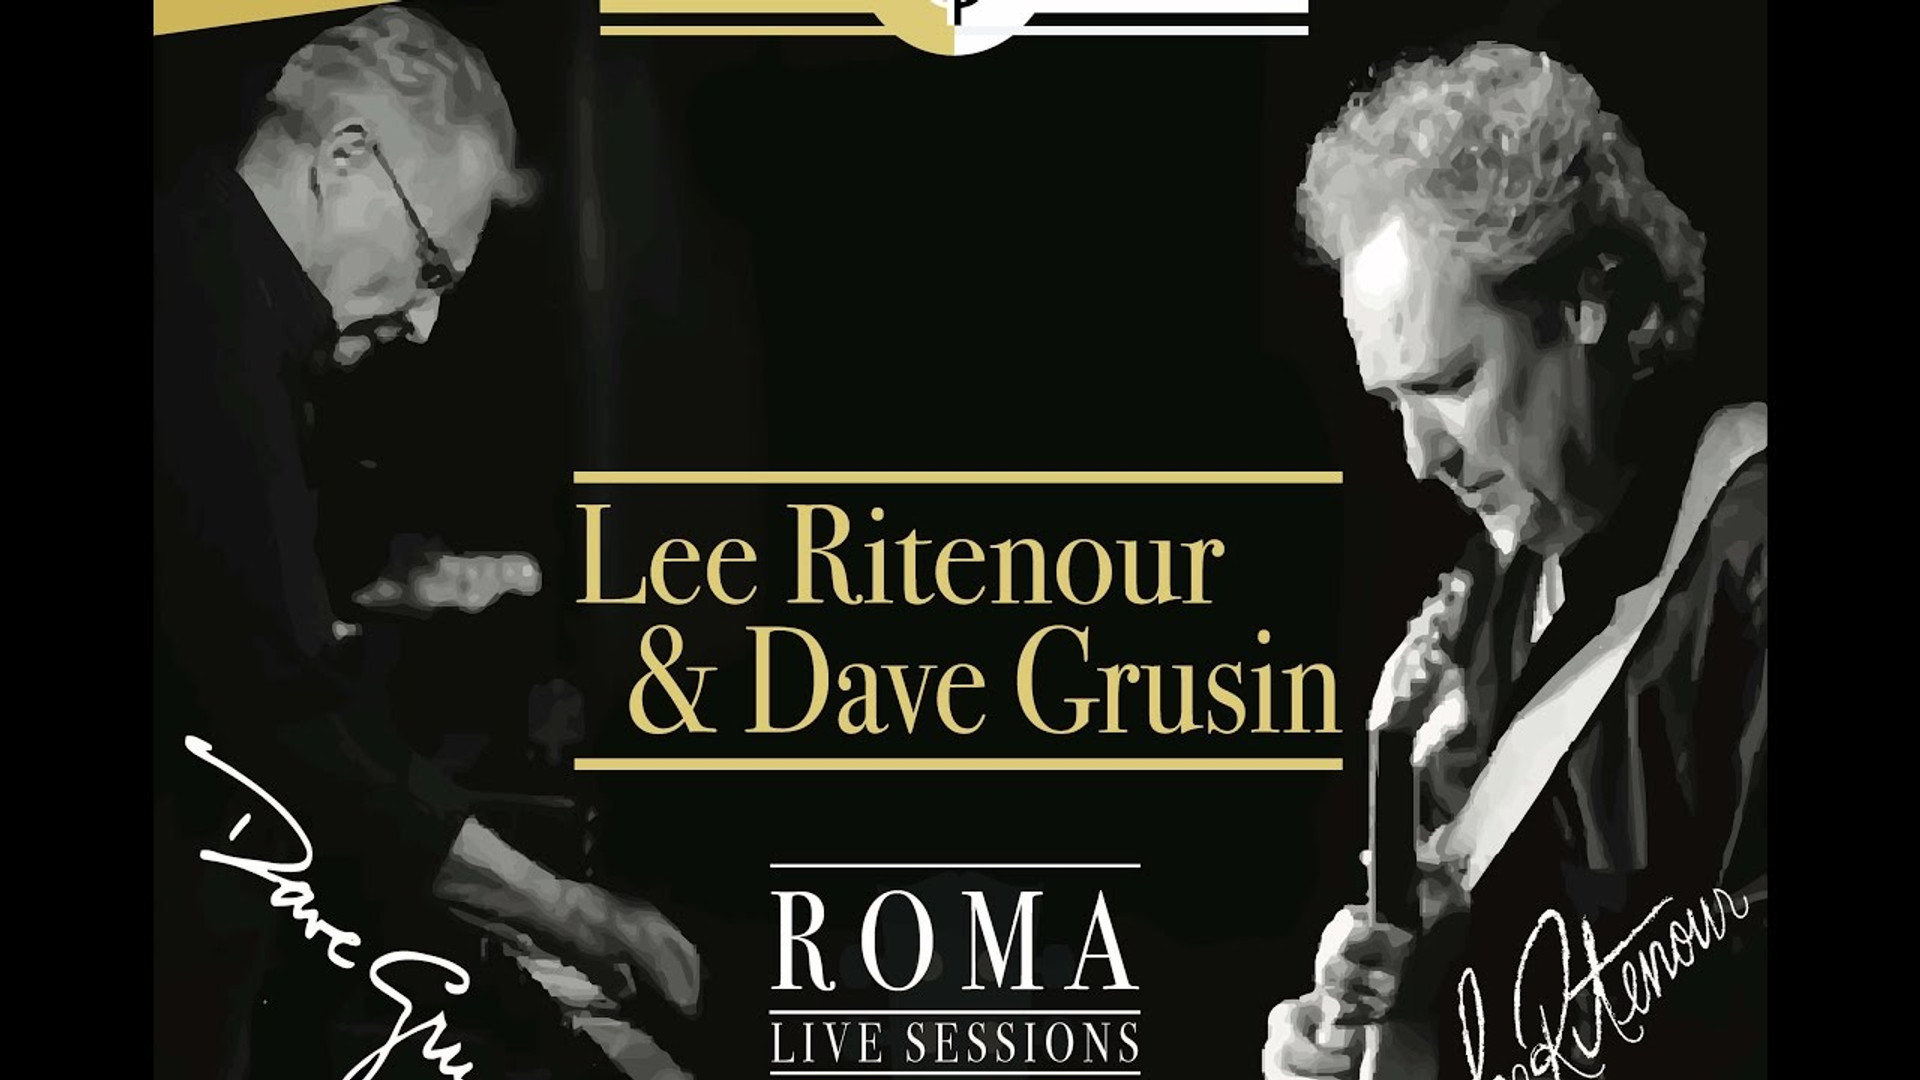 Lee Ritenour & Dave Grusin live at Forum Studios